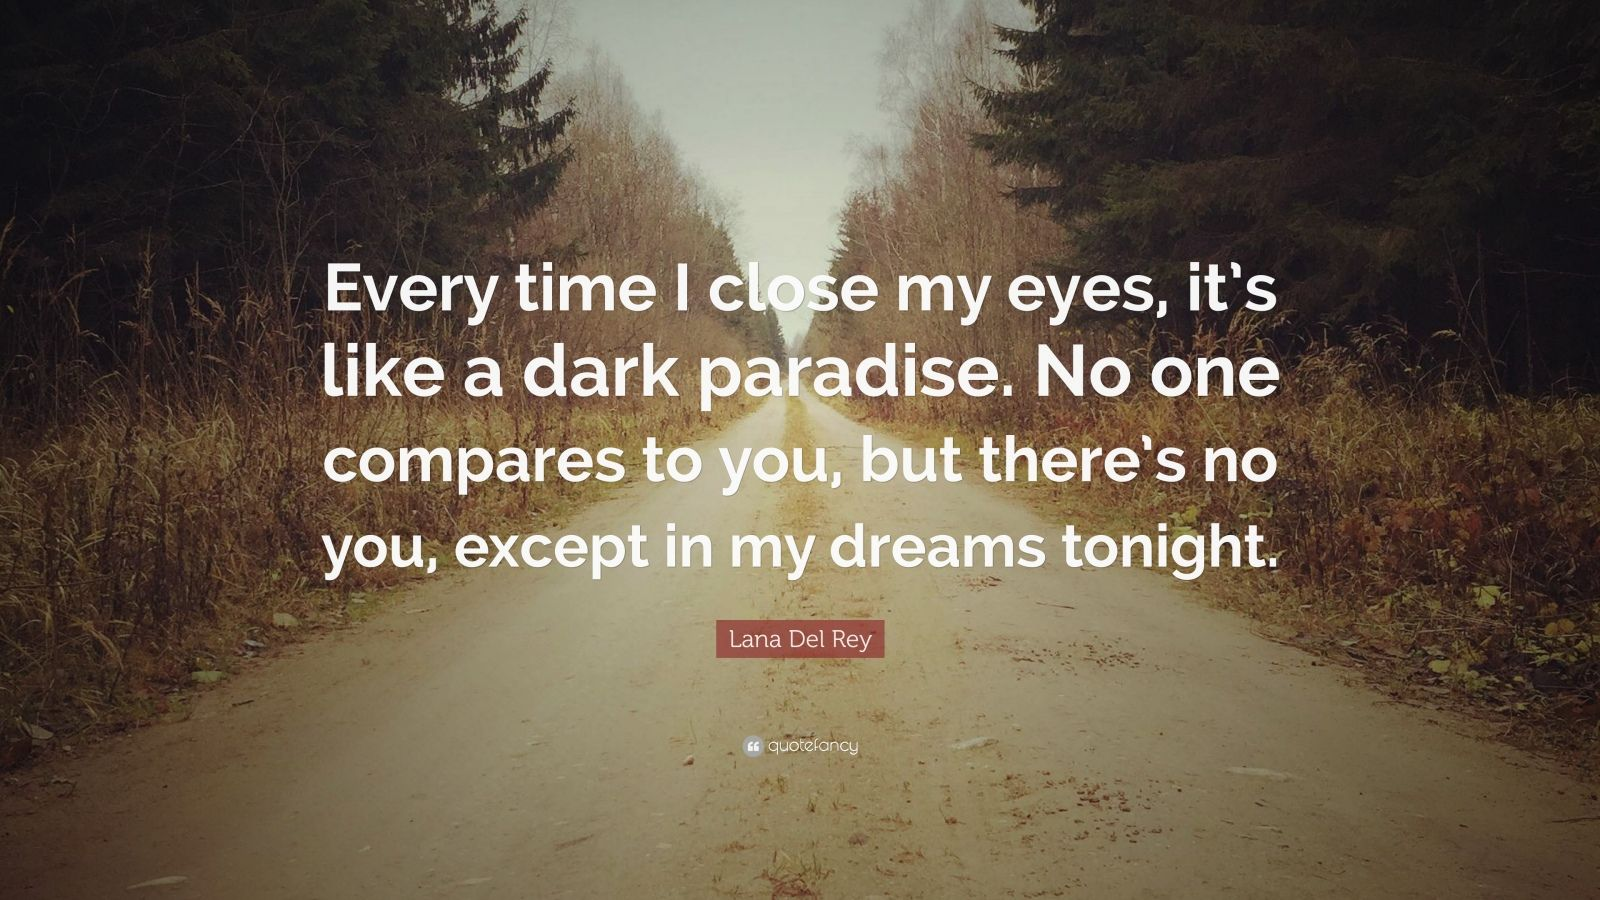 """Lana Del Rey Quote: """"Every time I close my eyes, it's like a dark paradise. No one compares to you, but there's no you, except in my dreams tonight."""""""